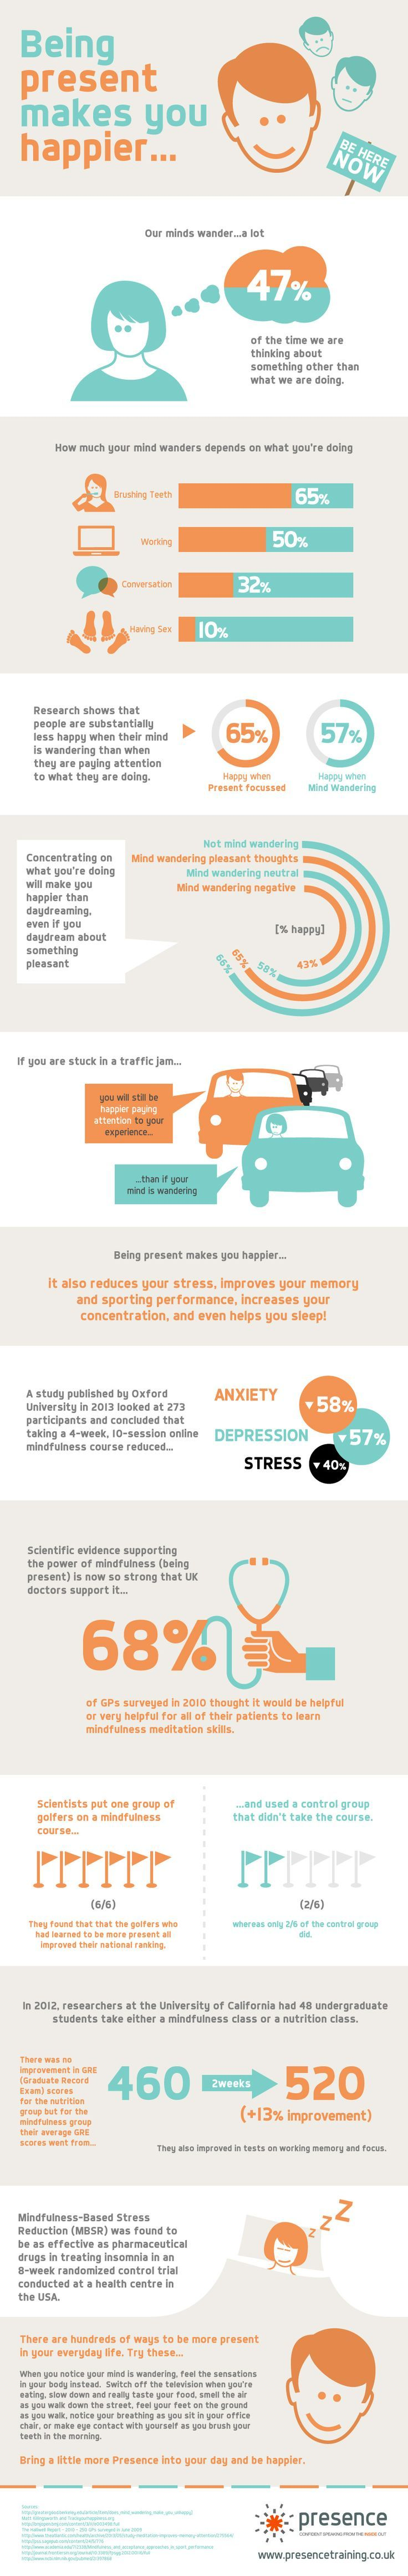 Being Present Makes You Happier ~ http://healthpositiveinfo.com/infographic-being-present-happier.html